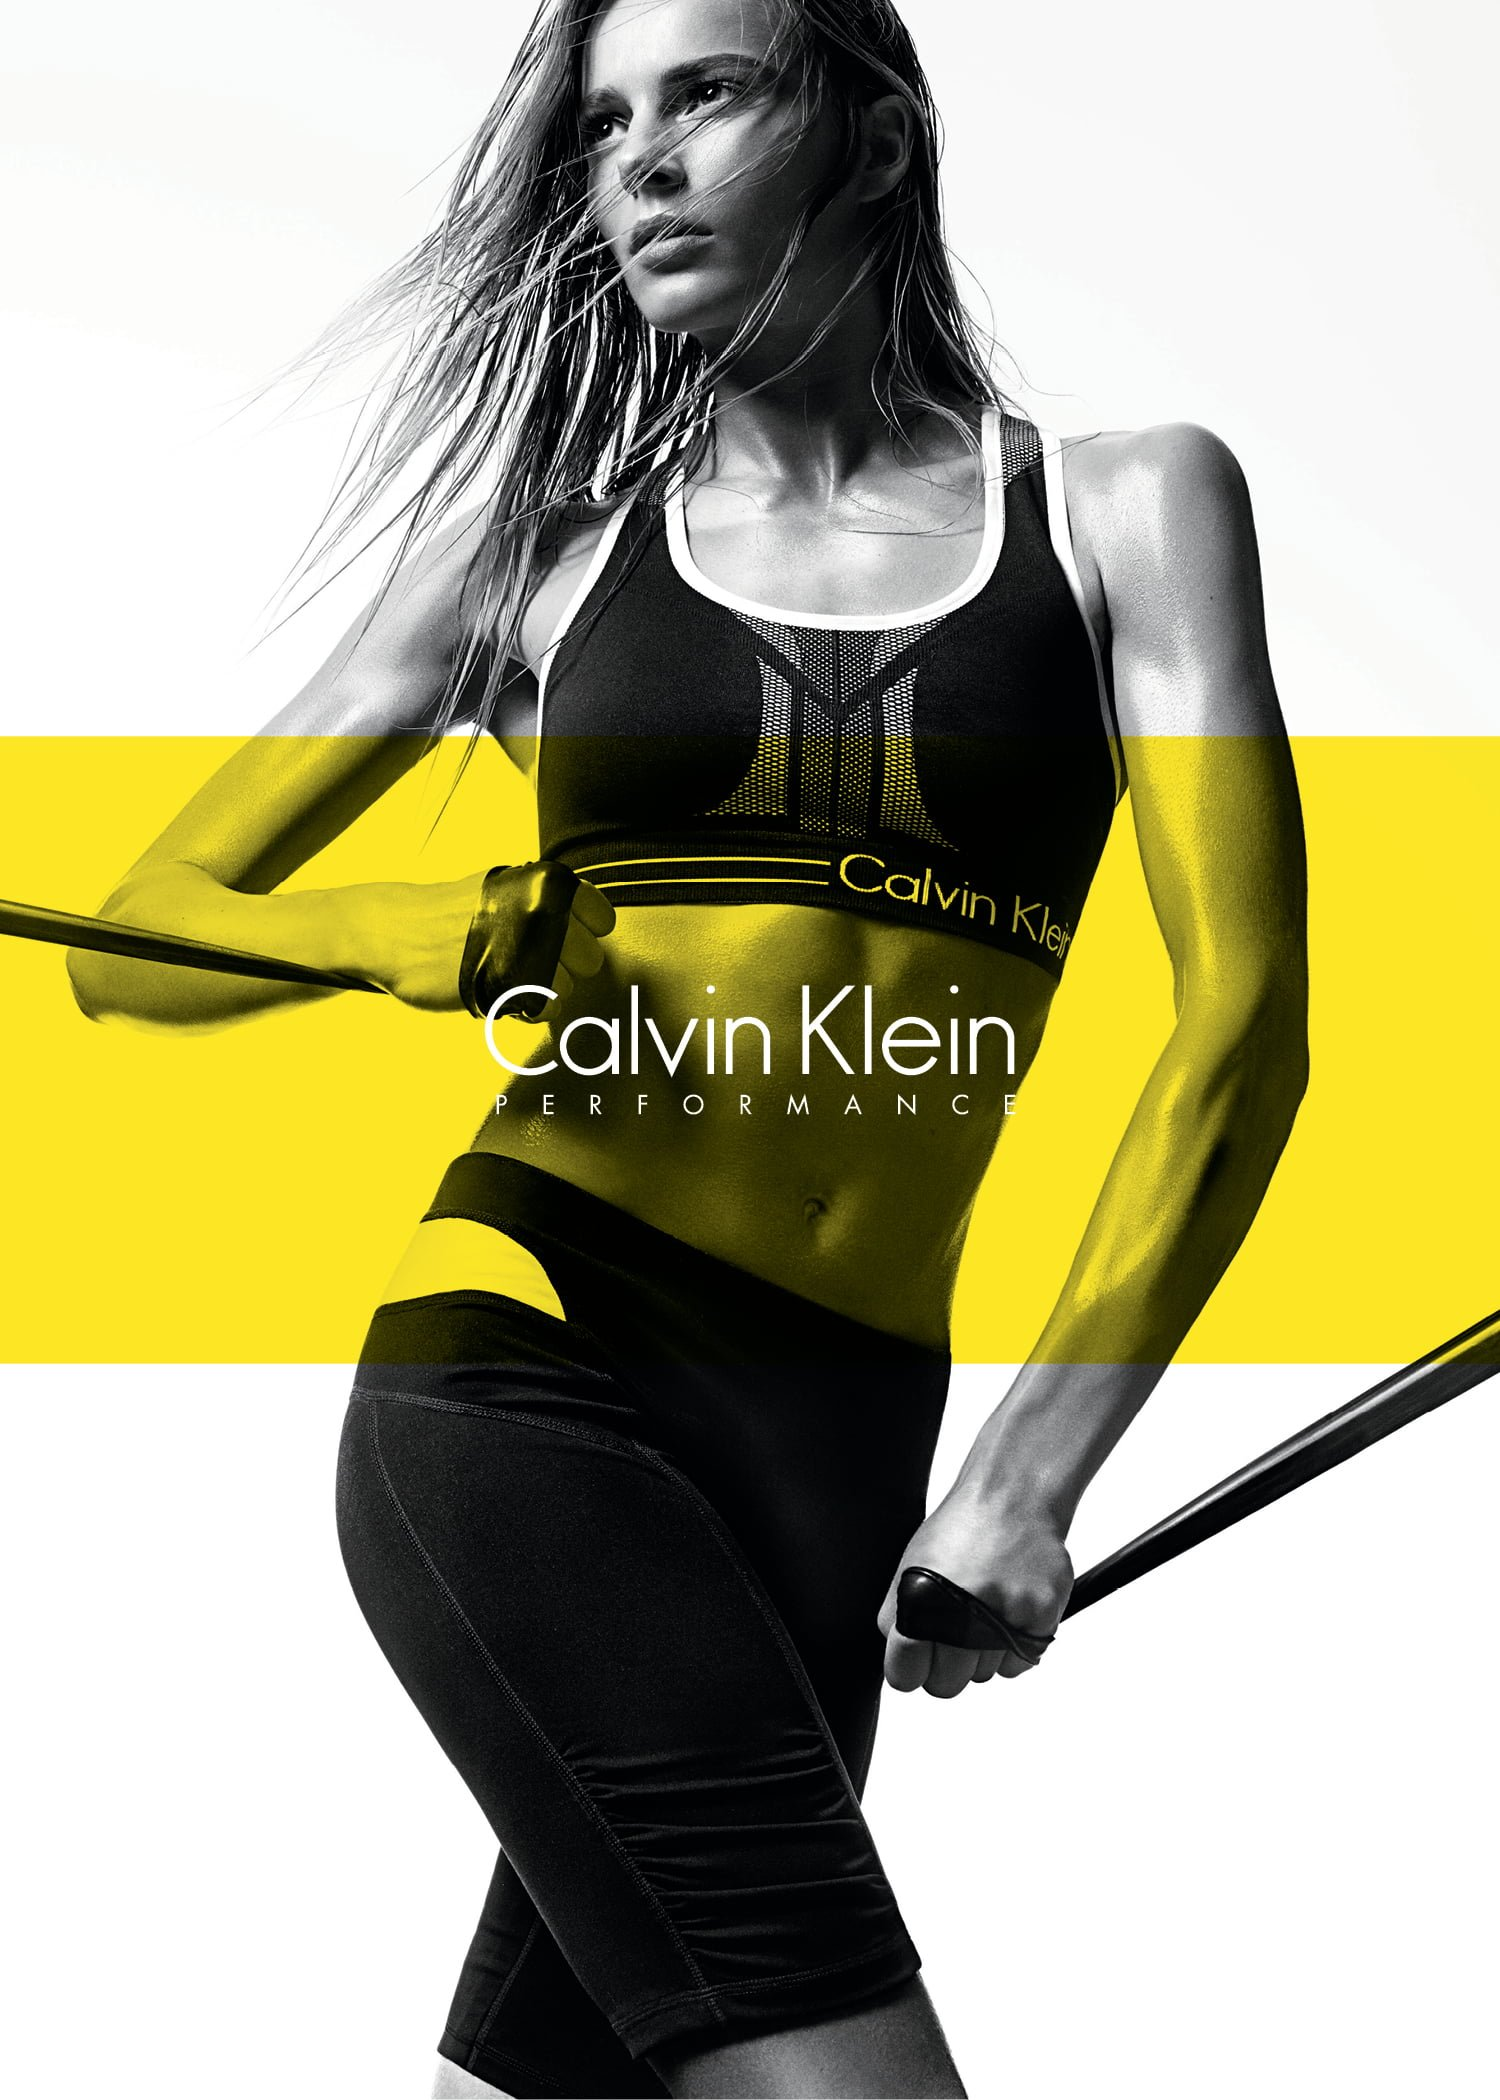 calvin-klein-performance-w-s15_ph_gregory-harris_sg03